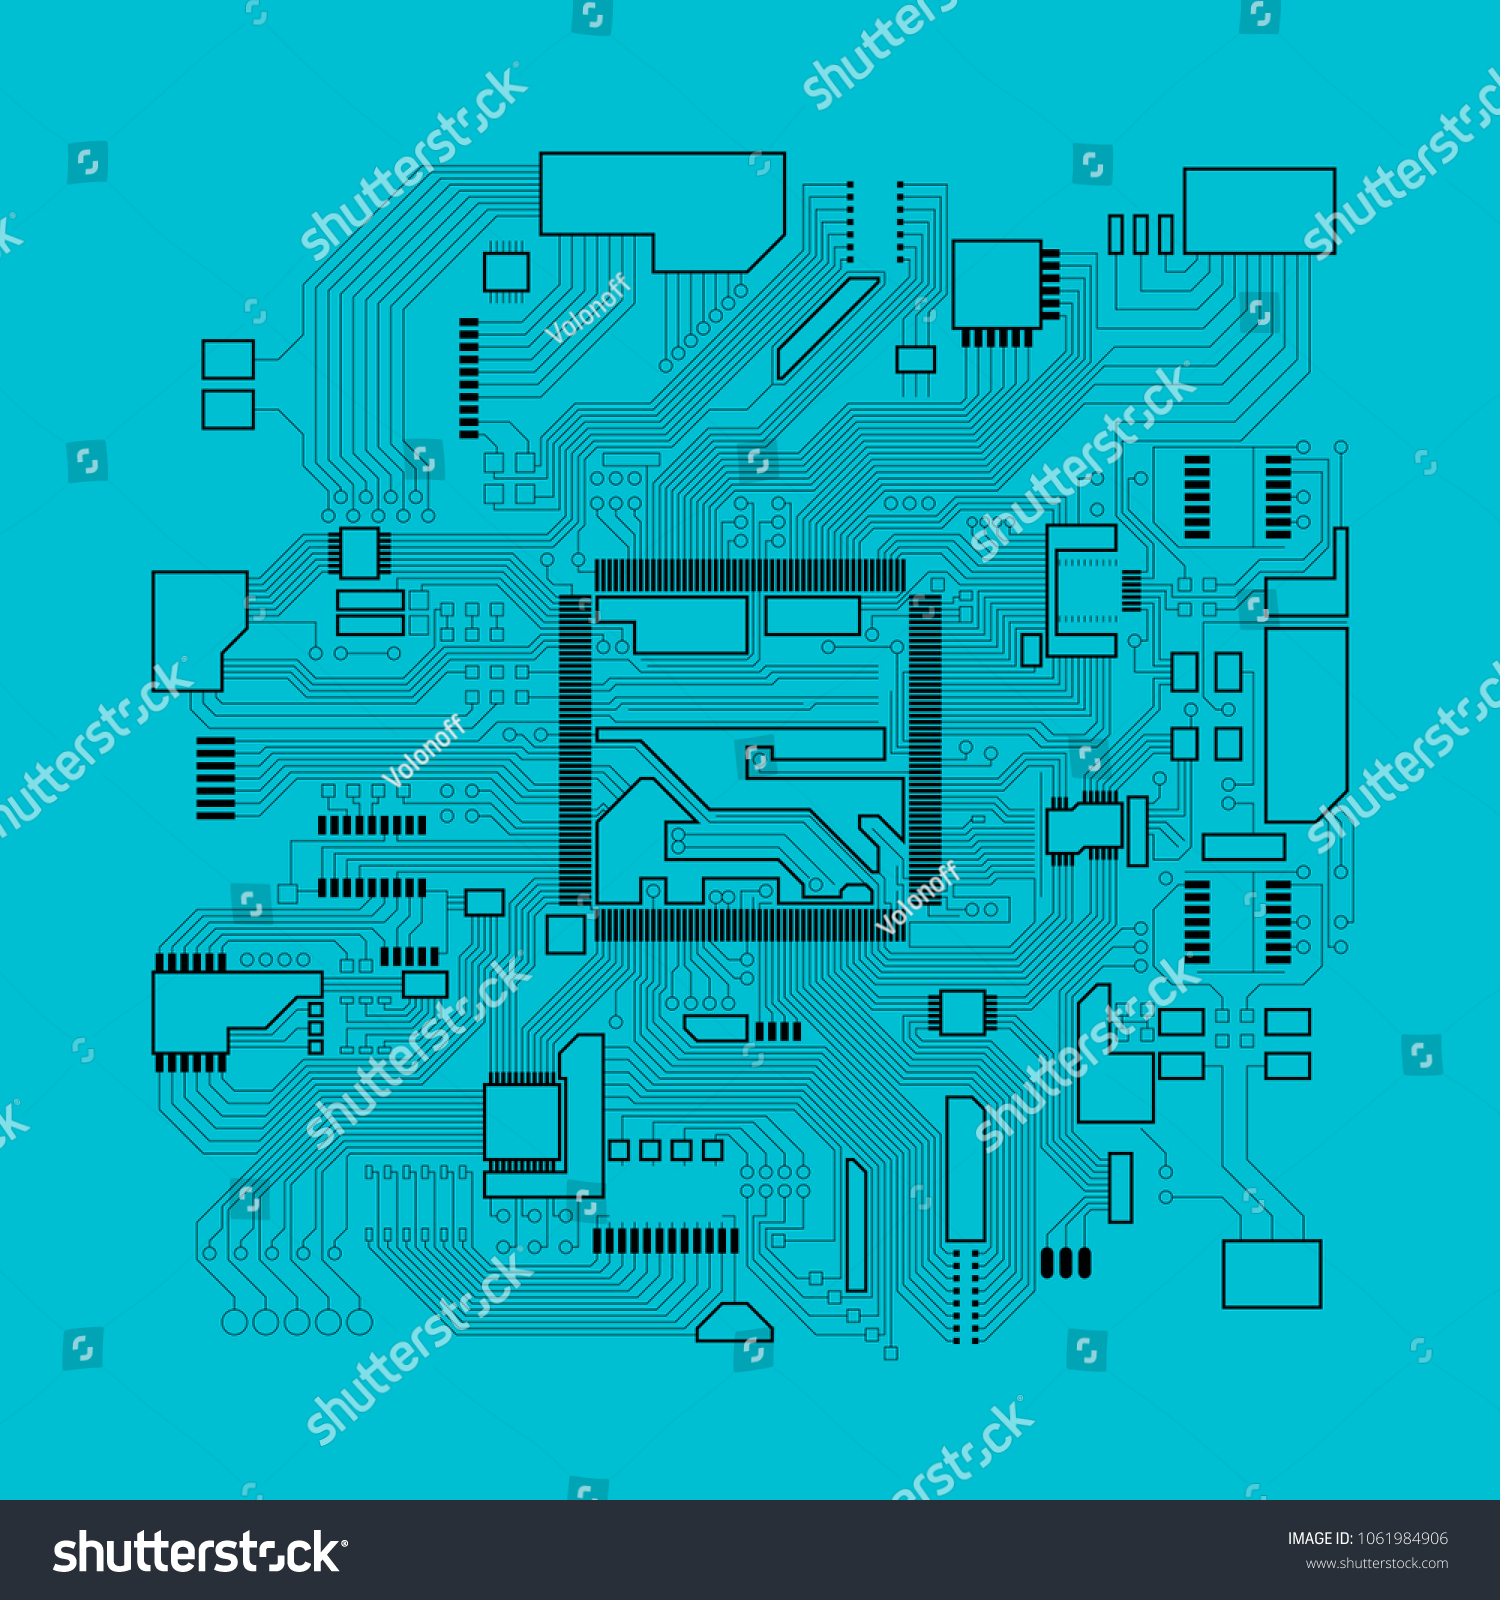 Circuit Board Electronic Computer Hardware Processor Stock Vector Boards With Clock Hands Royalty Free Image Technology Motherboard Digital Chip Tech Science Background